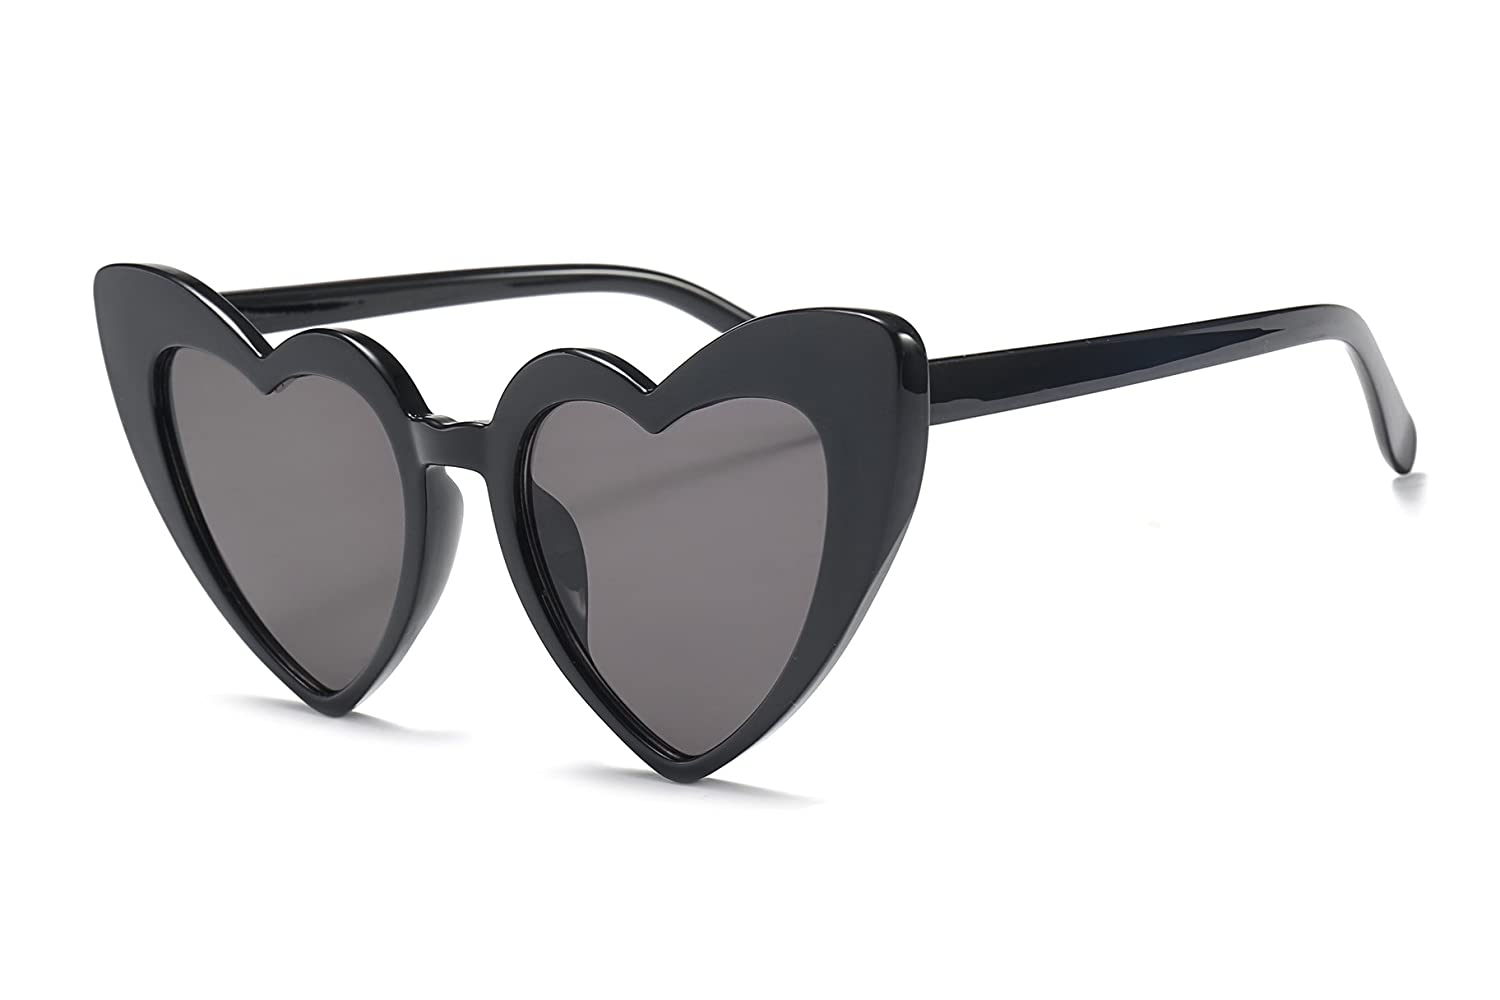 3bf67797e8 FEISEDY Vintage Heart Shaped Sunglasses Stylish Love Eyewear Women Great  Christmas Gift B2421  Amazon.co.uk  Clothing